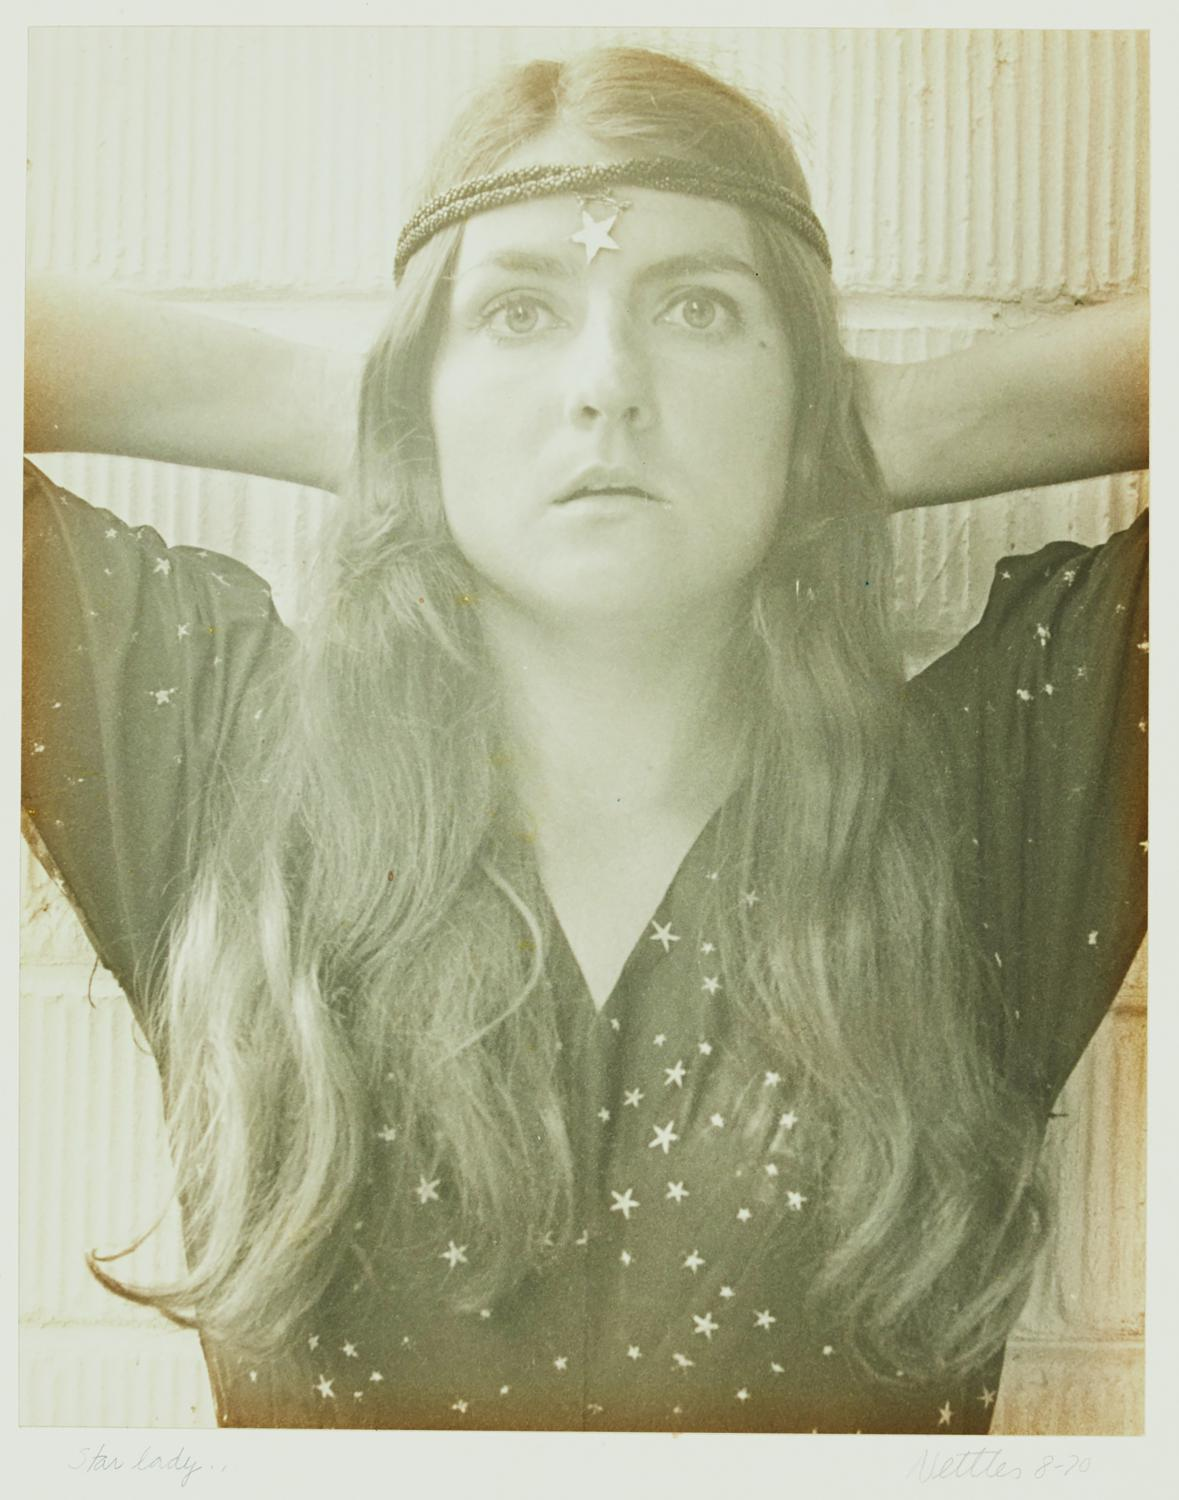 Sepia colored photo of a woman looking wide-eyed at the camera. She has on a star crown over her long, flowing hair and a blouse covered in stars. She is the photographer, and this is a self portrait.